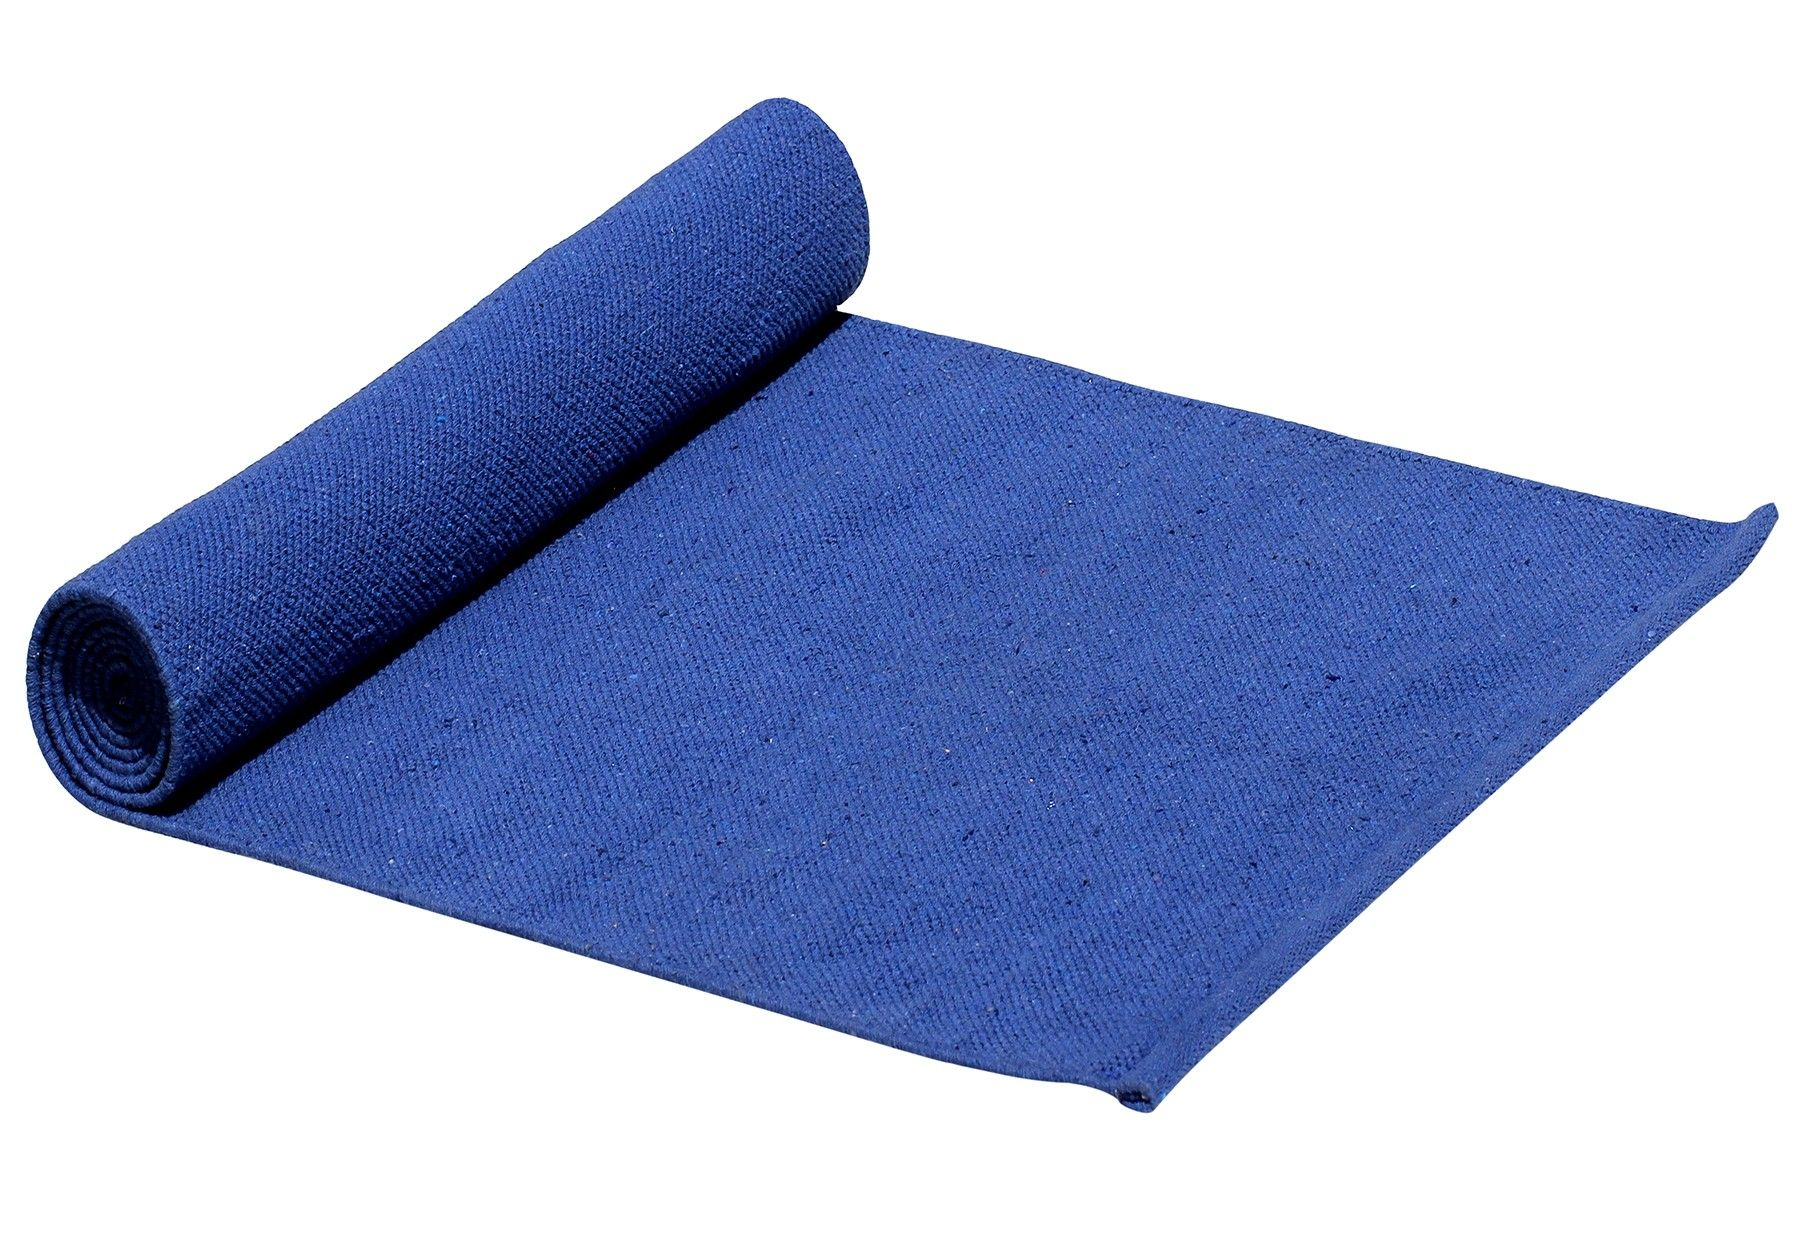 Being Fit Handmade Extra Long 6 X 2 2 Ft 72x26 Inch Cotton Yoga Mat In Blue Color Jute Travel Bag Yoga Supplies Yoga Mat Wholesale Accessories